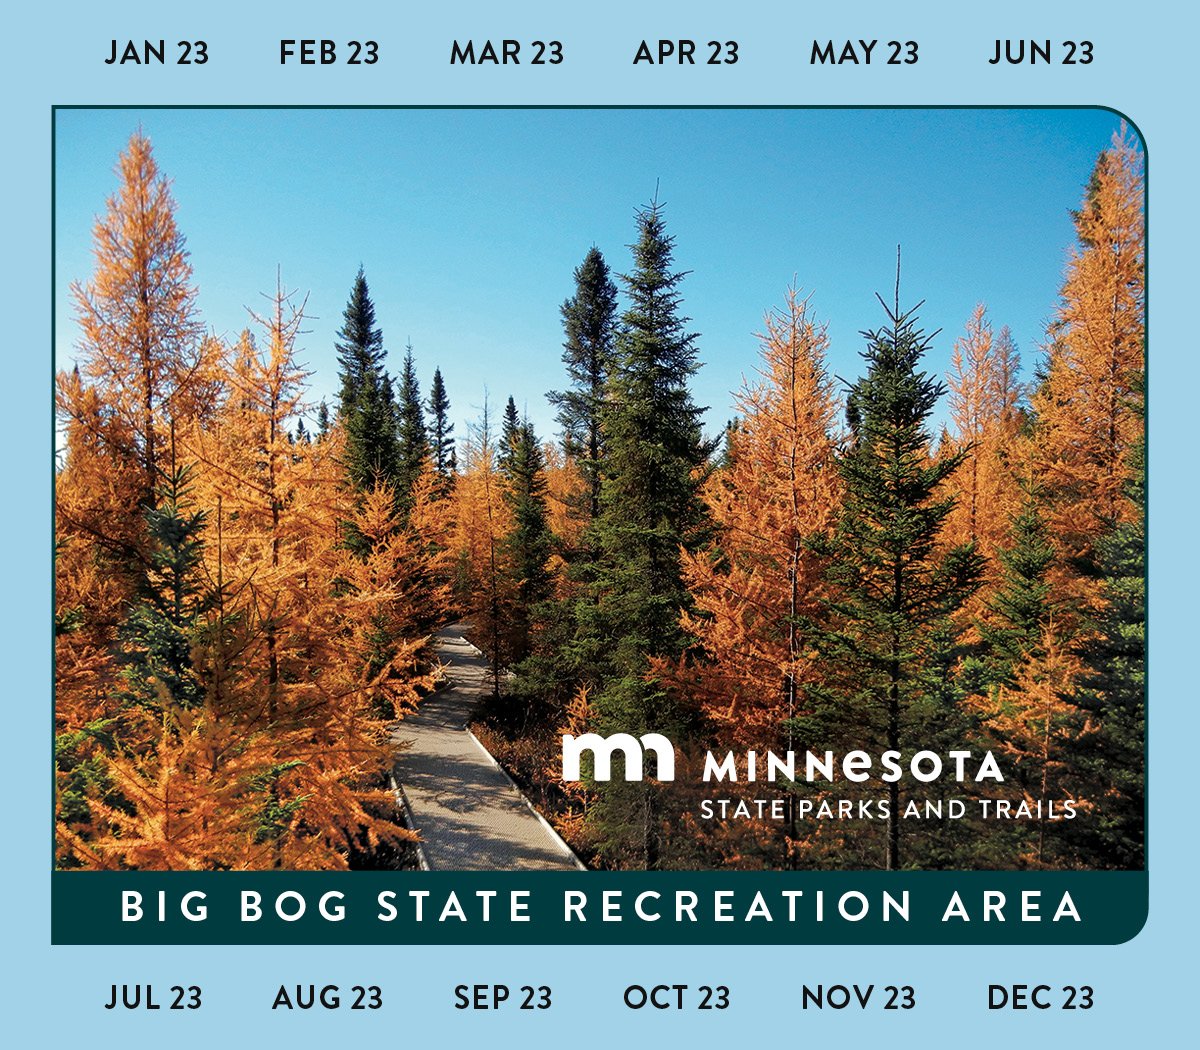 Image of the 2019 Minnesota State Park Annual Permit